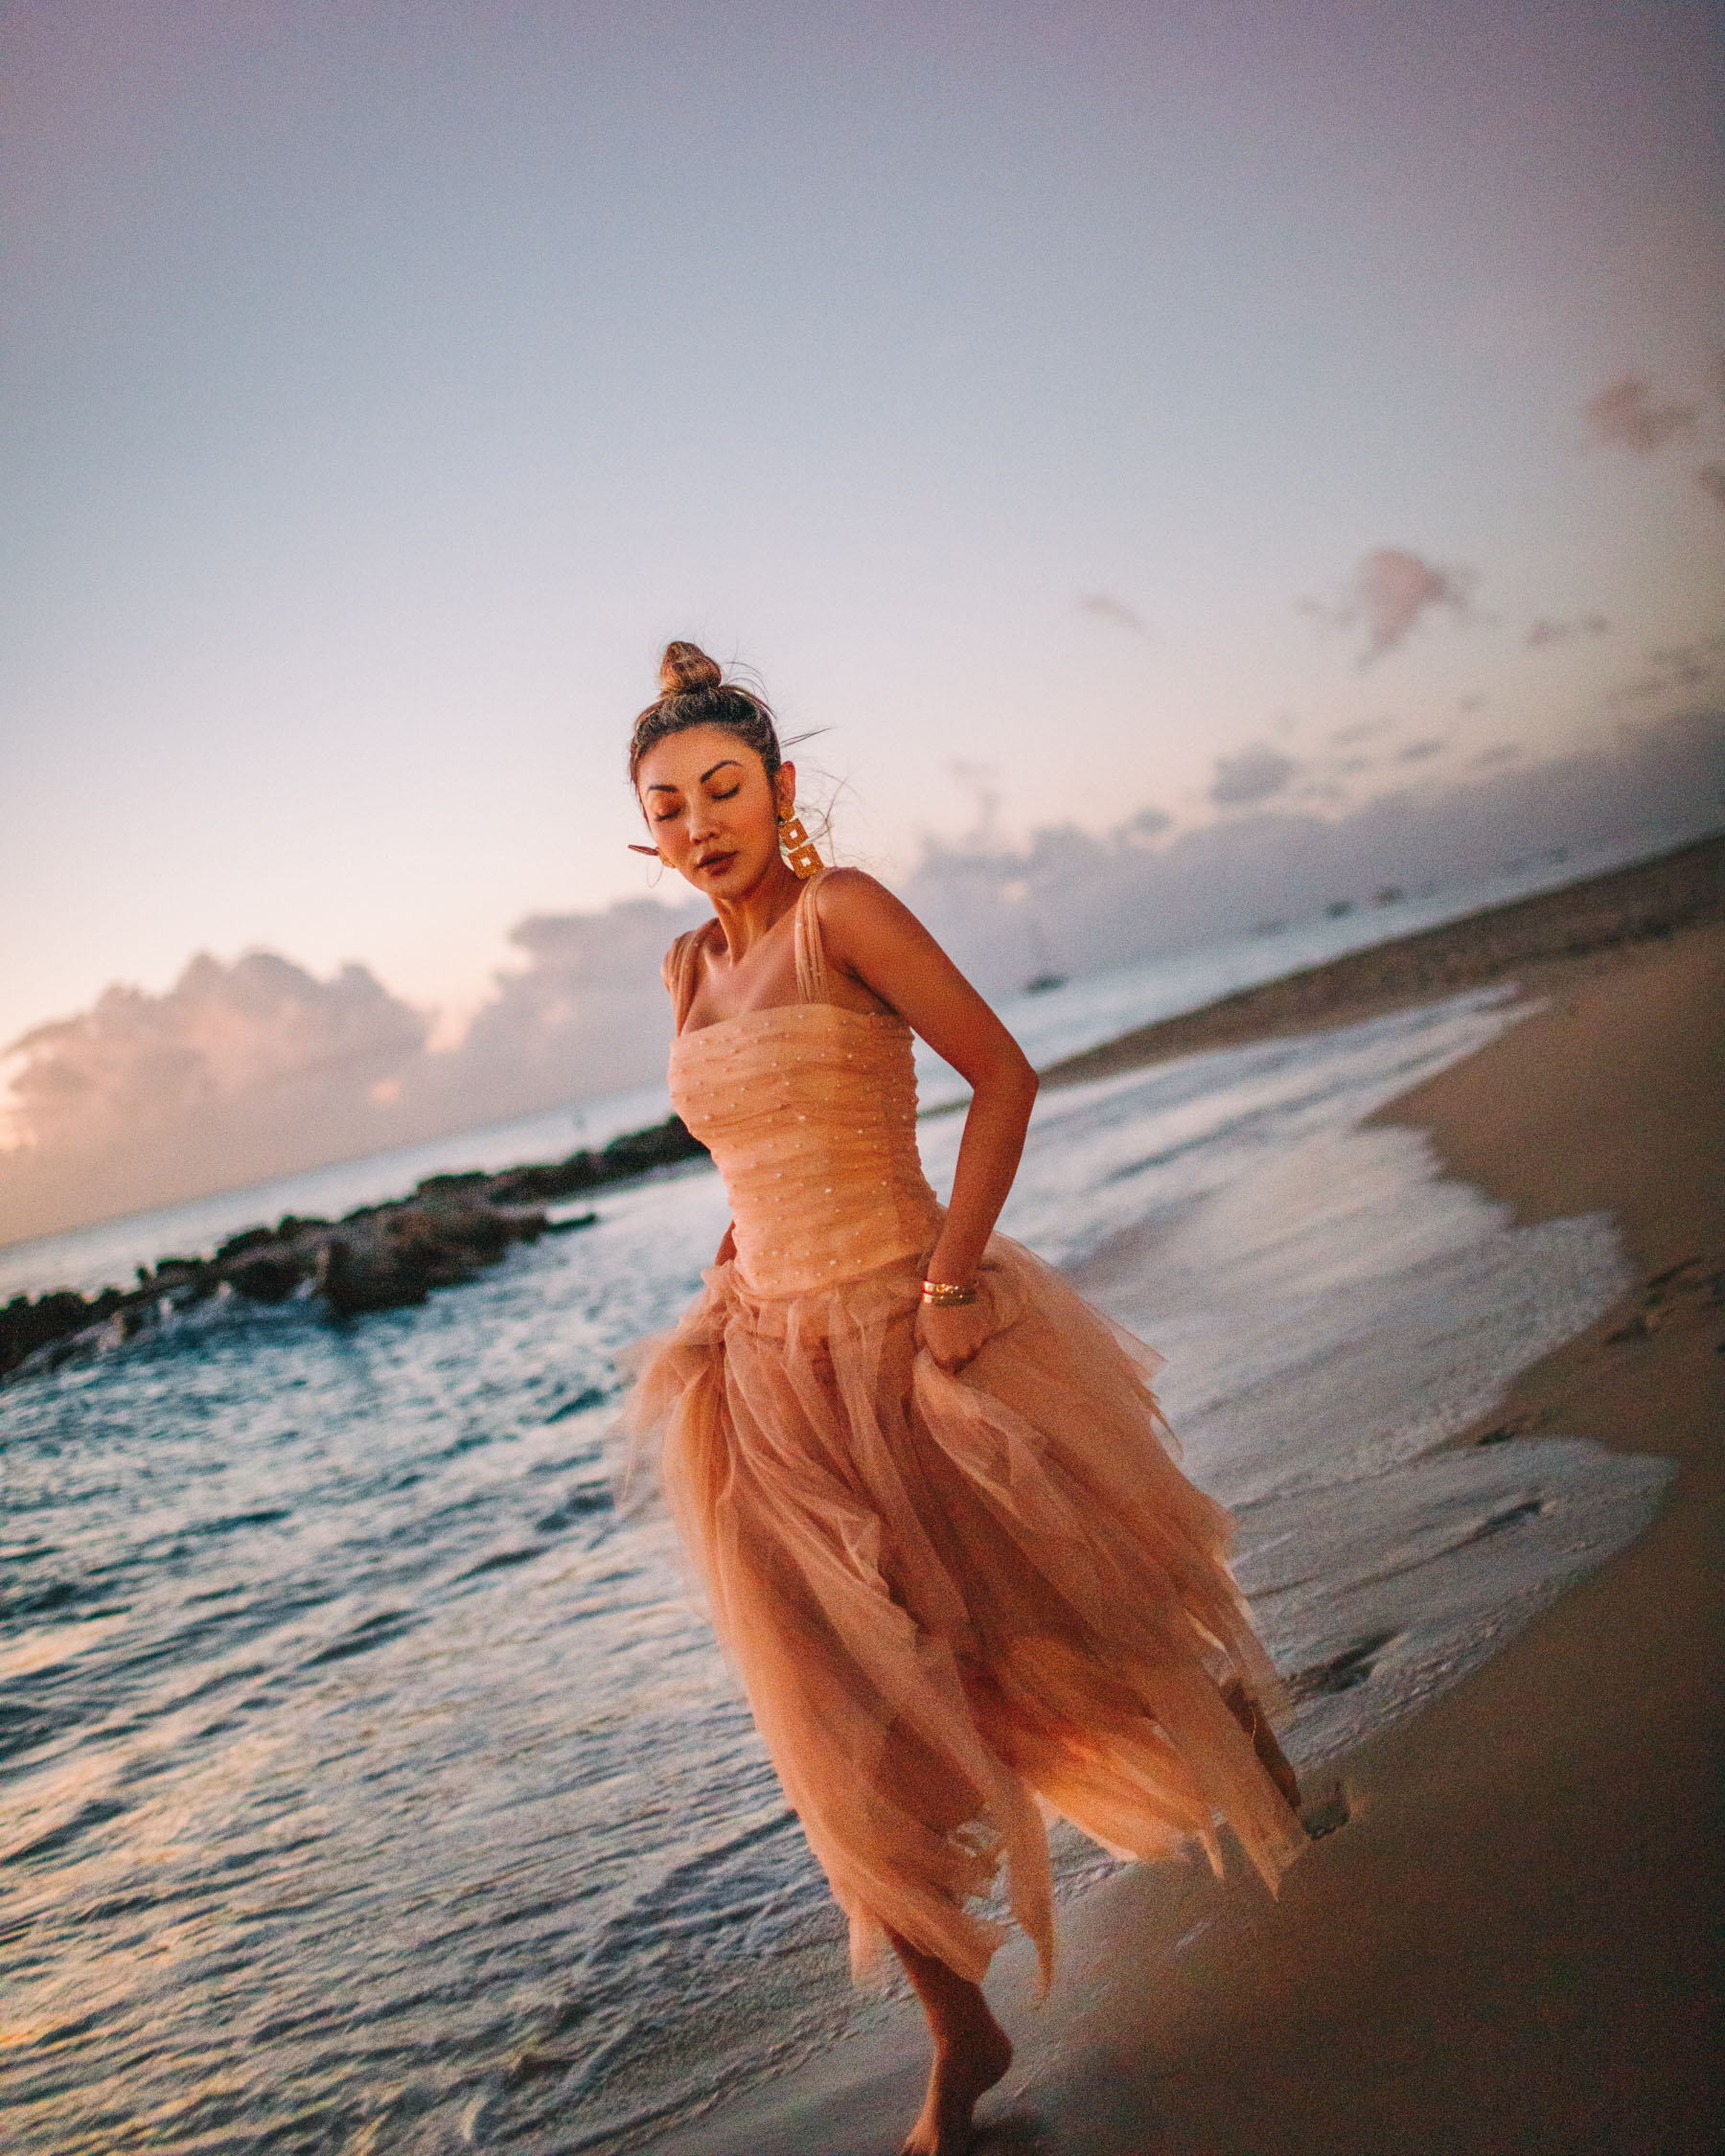 self-care regimen, bcbgmaxazria dress, barbados vacation // notjessfashion.com